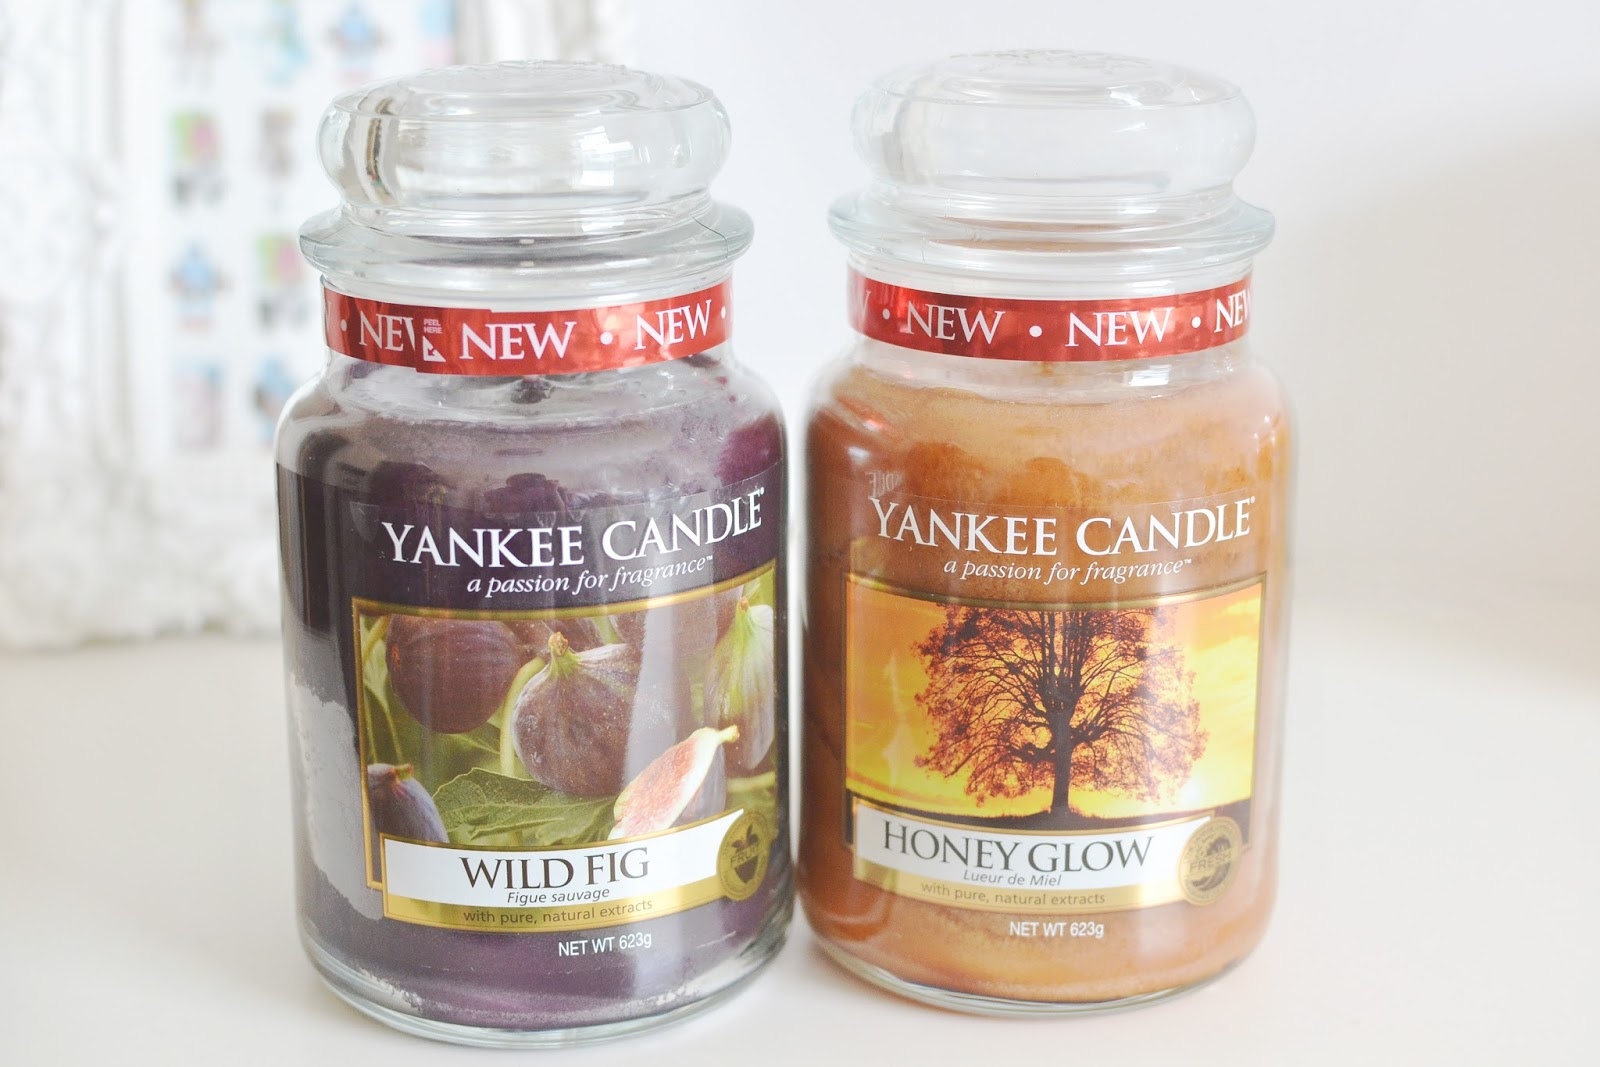 wild fig candles, honey glow candles, yankee candle indian summer